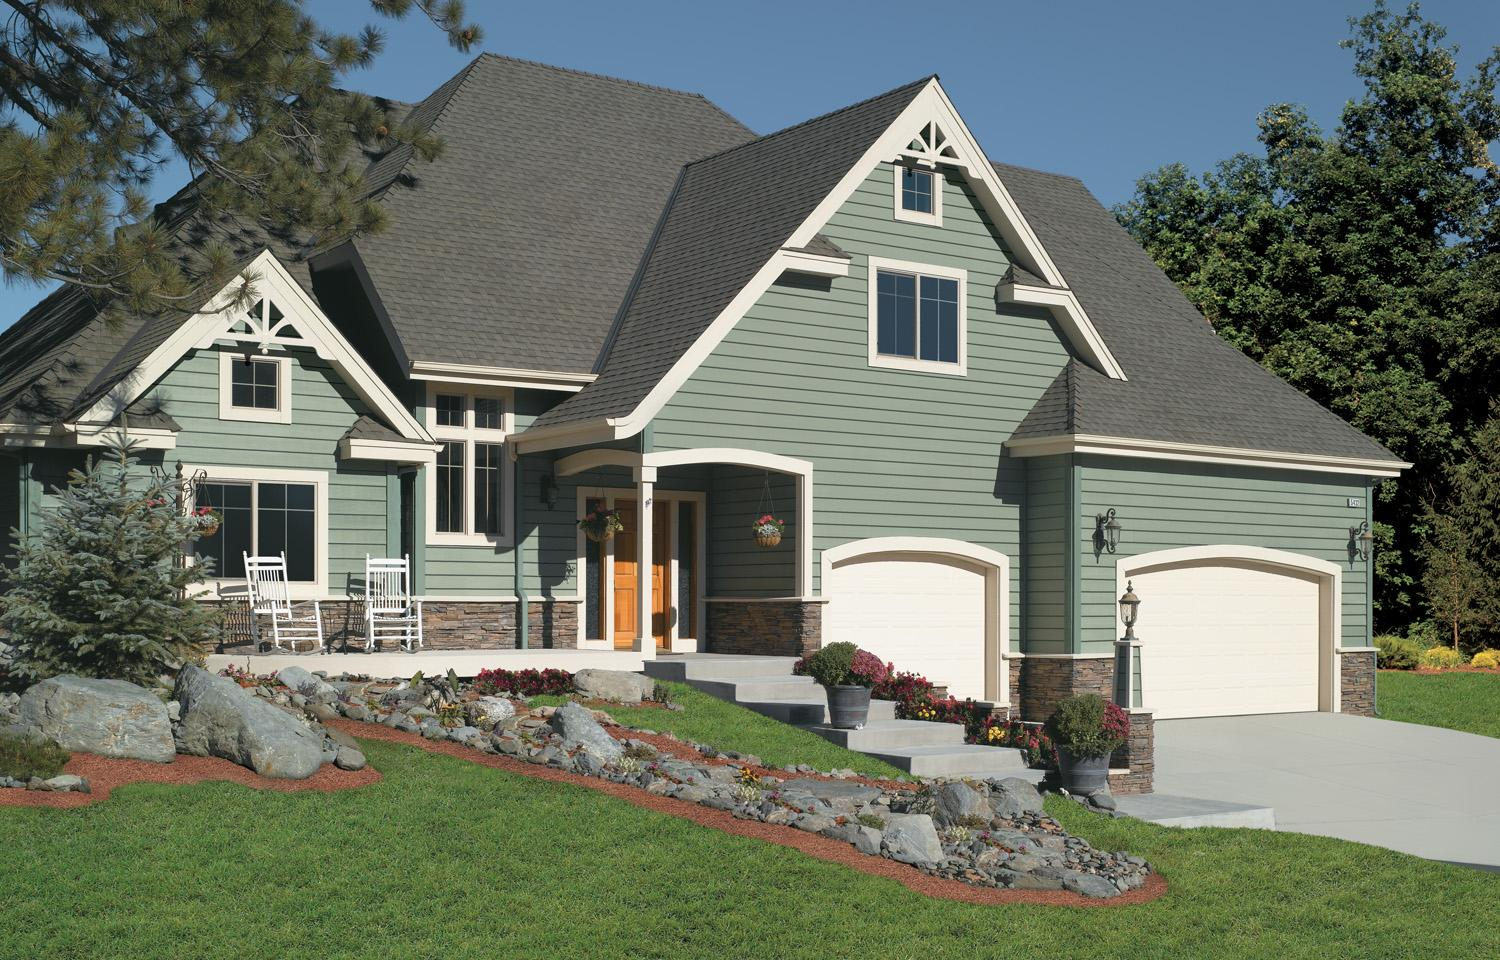 4 types of fiber cement siding for your home pros and cons for Design siding on my house